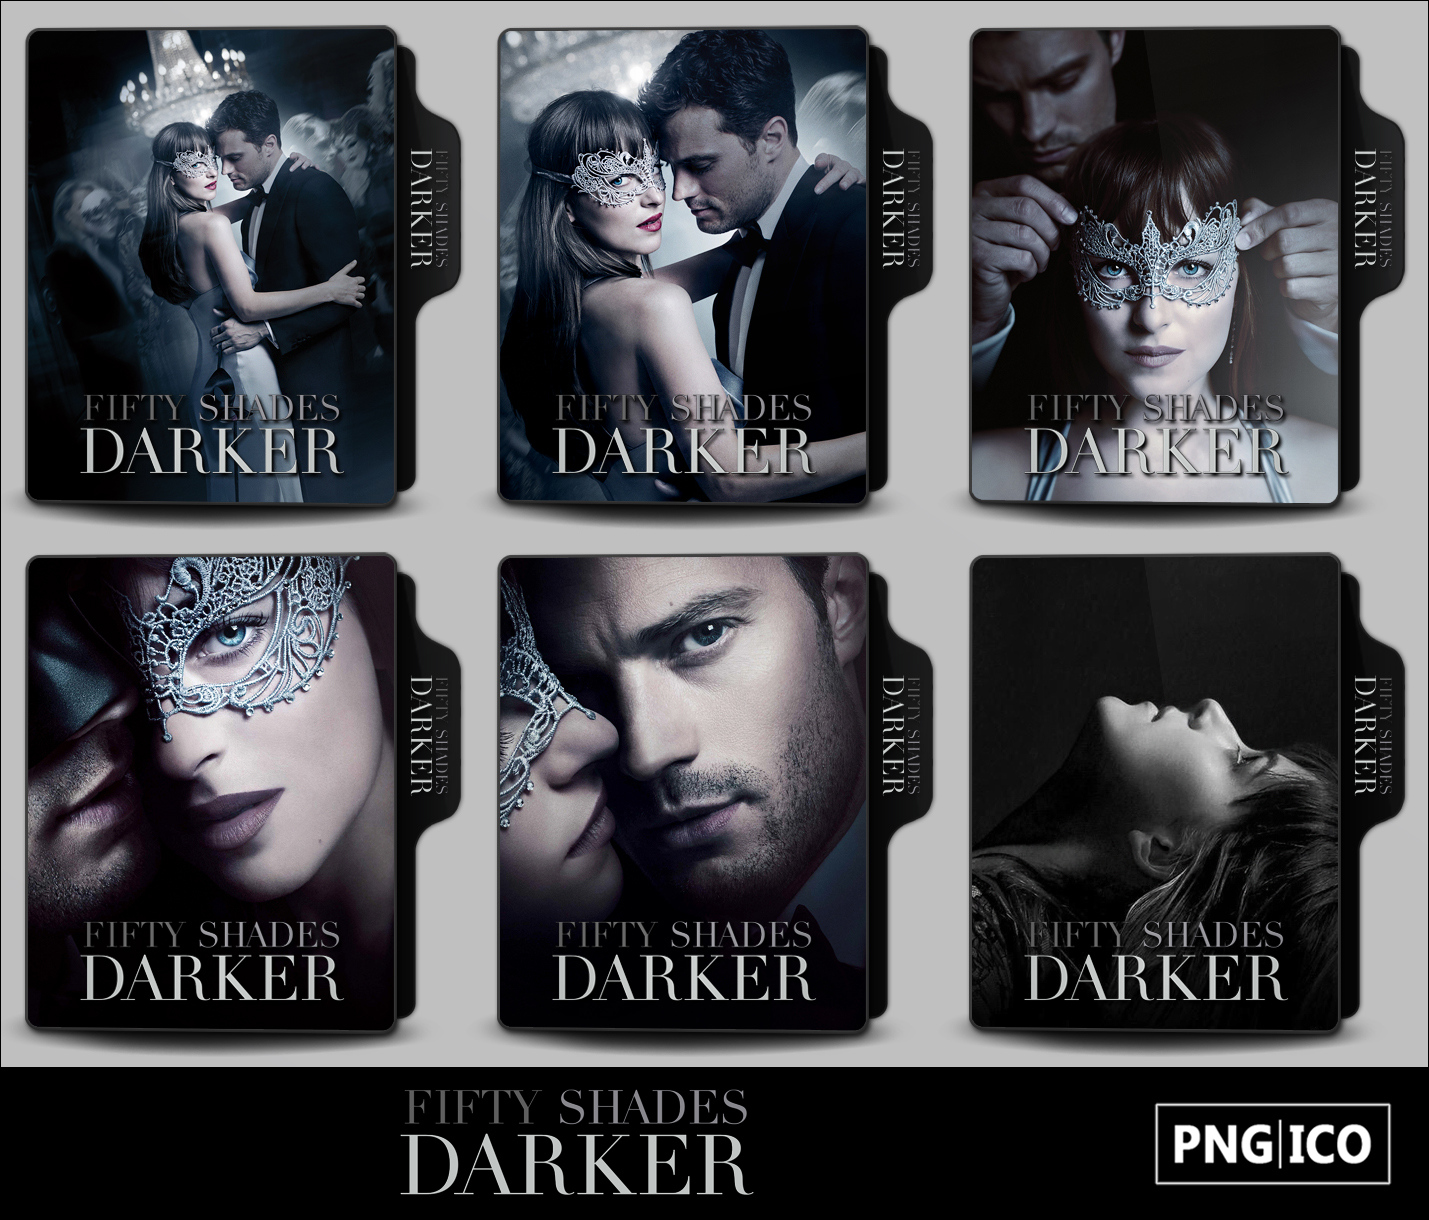 Fifty Shades Darker 2017 Folder Icons By Onlystylematters On Deviantart